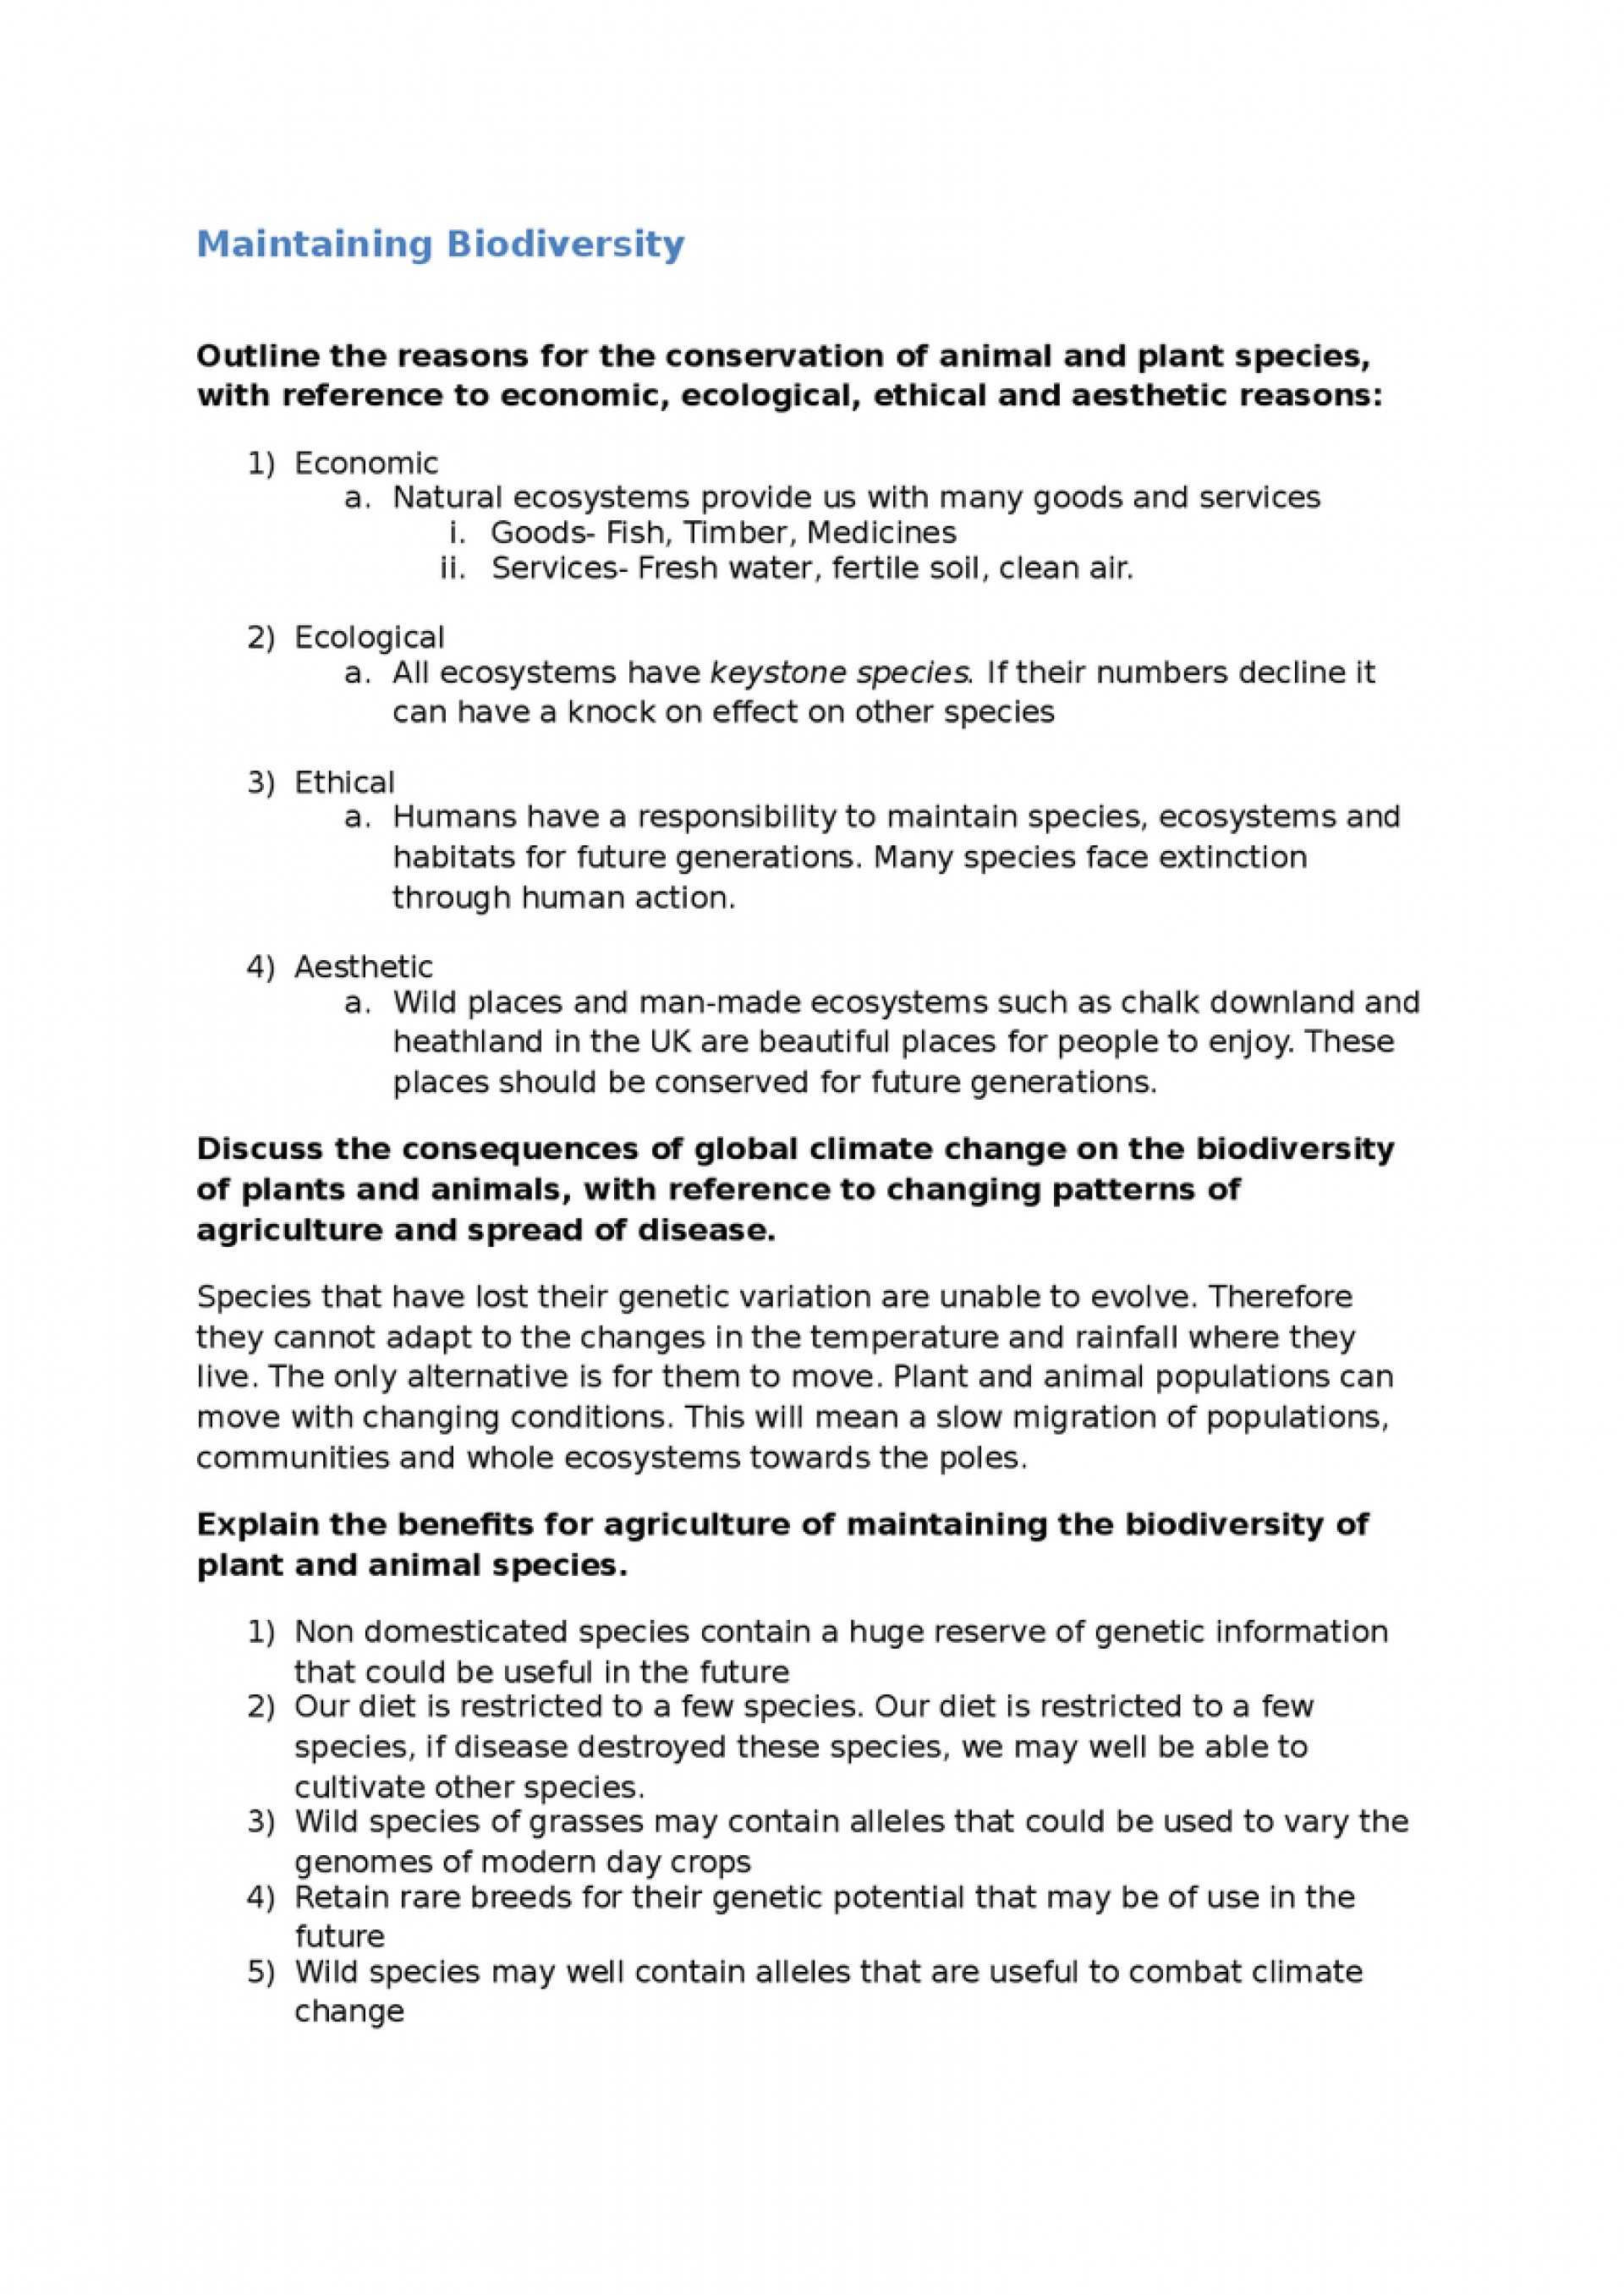 007 Pay For Essays To Write Popular Persuasive Essay Online Vision Professional Paid My Uk Someone Canada Reddit Paper University Get Dreaded Cheap Magazines That 1920